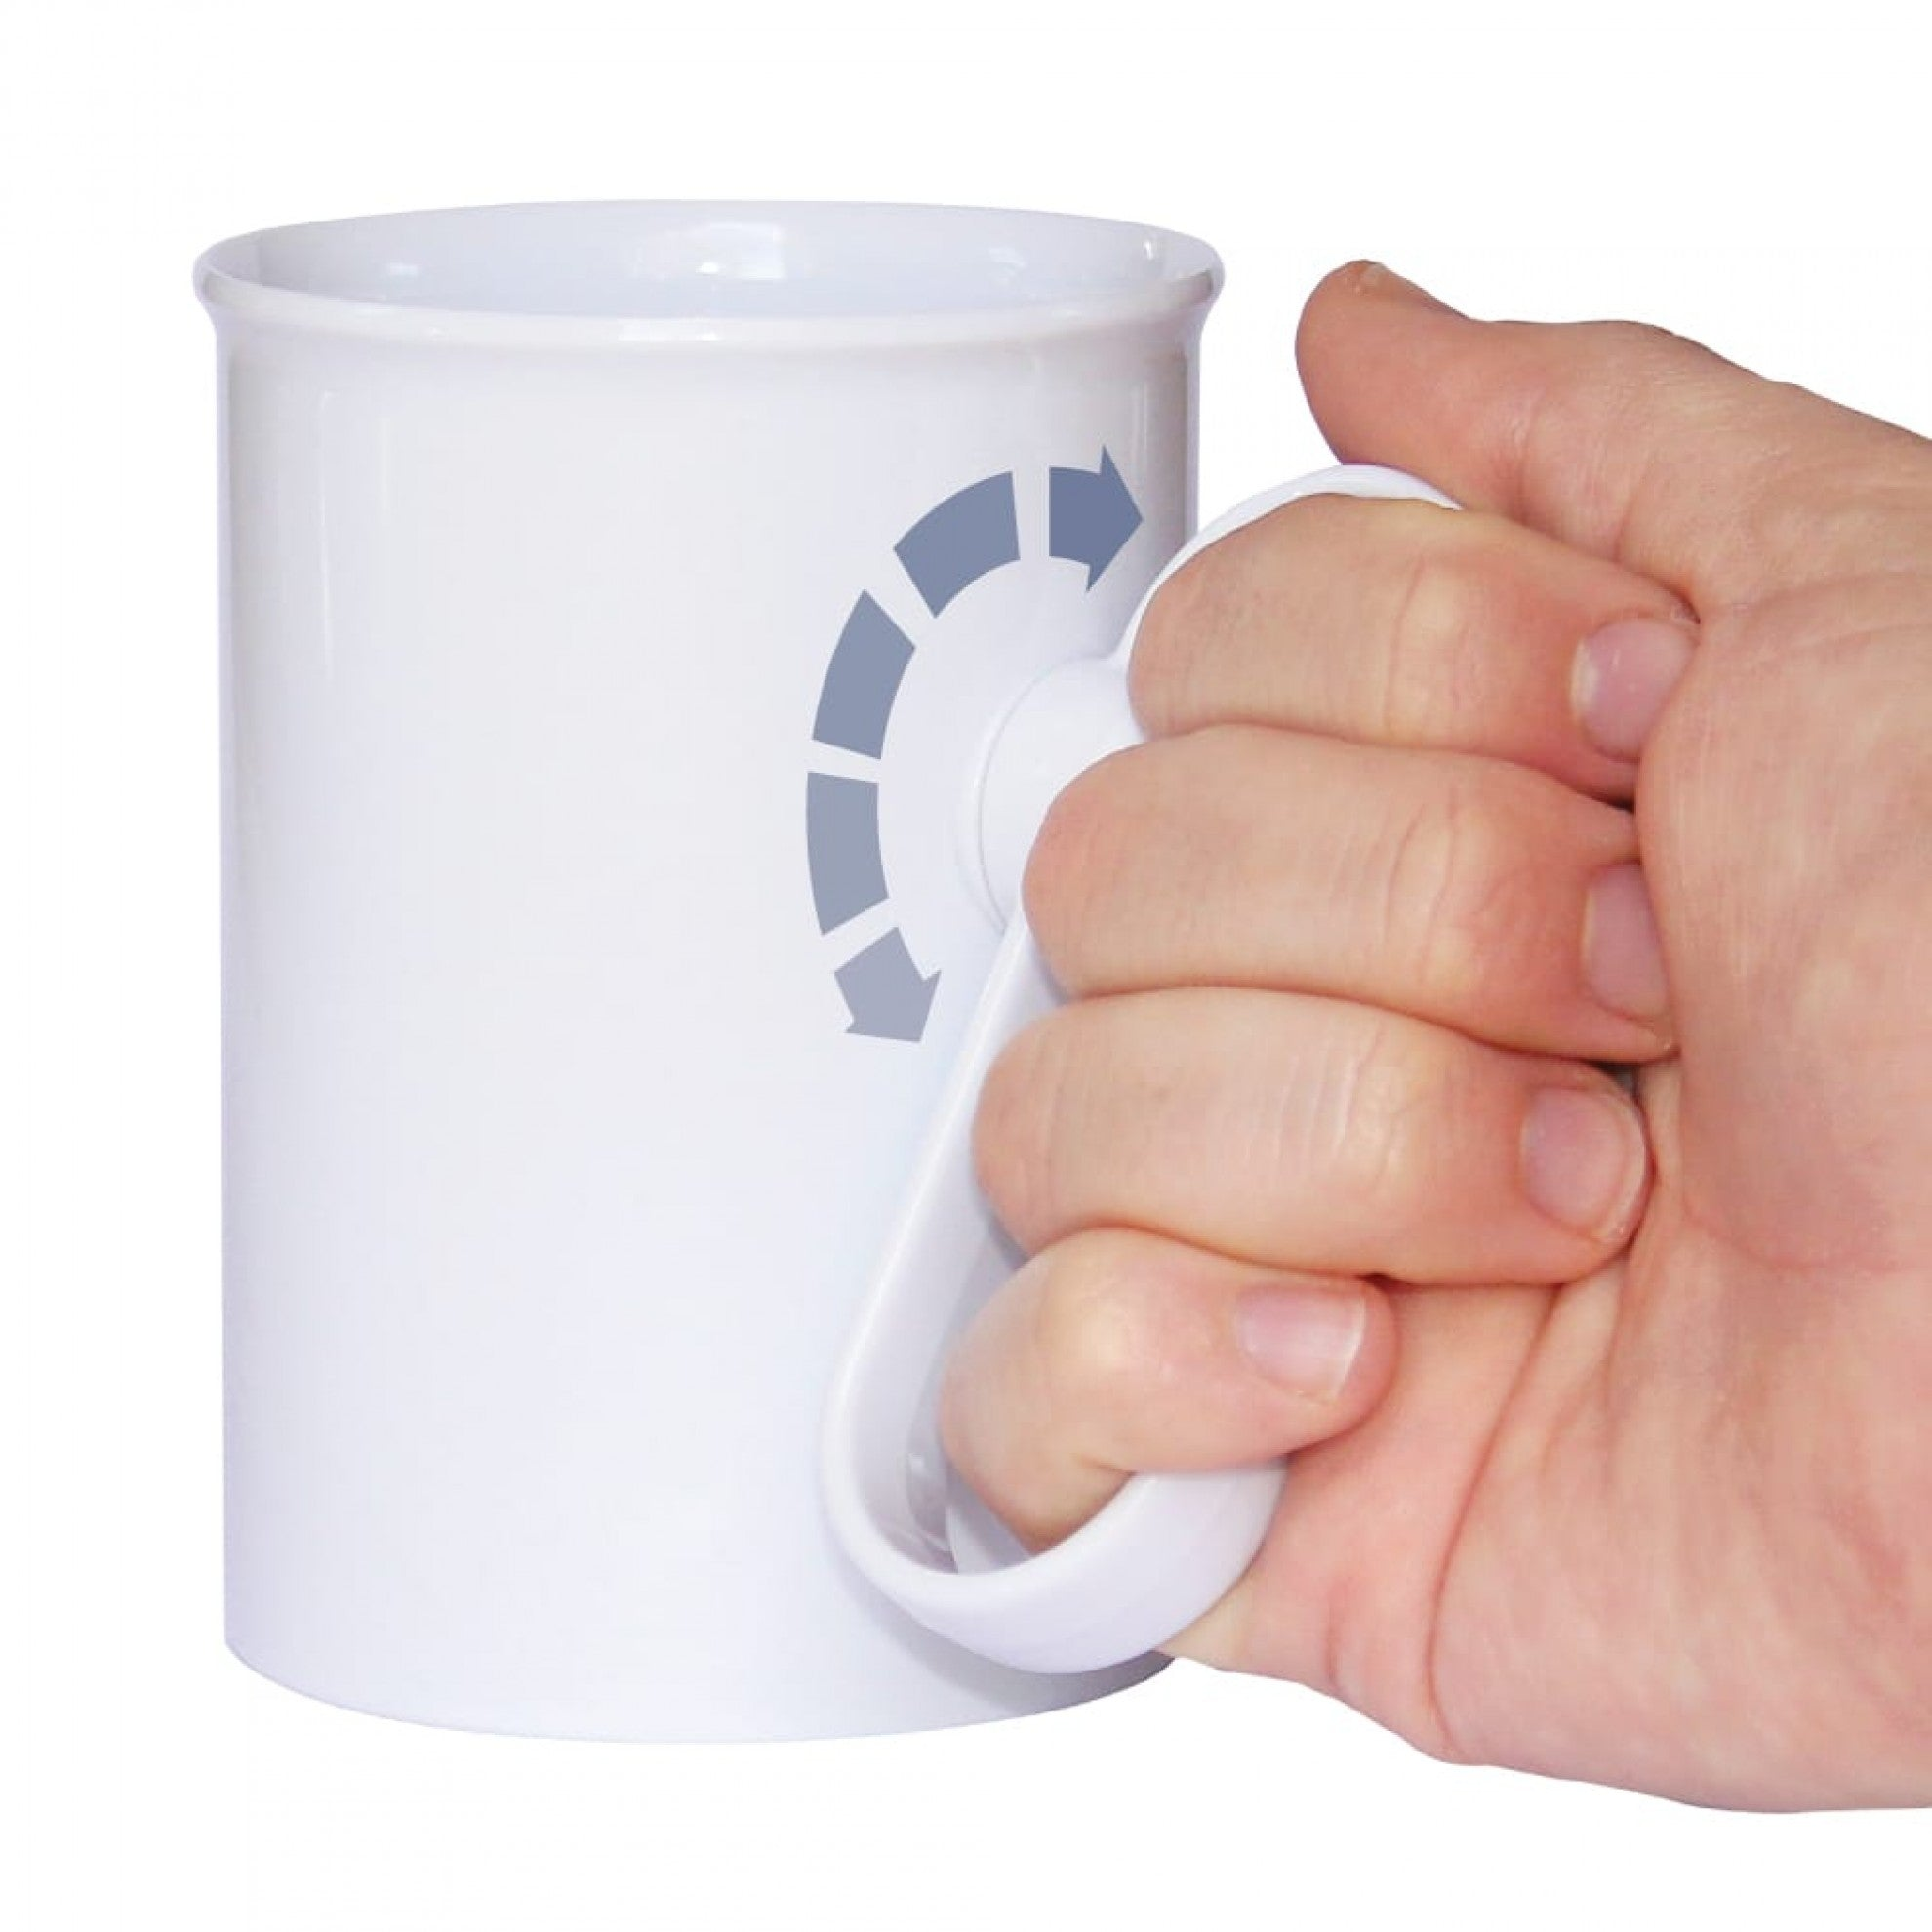 Handsteady Drinking Mug